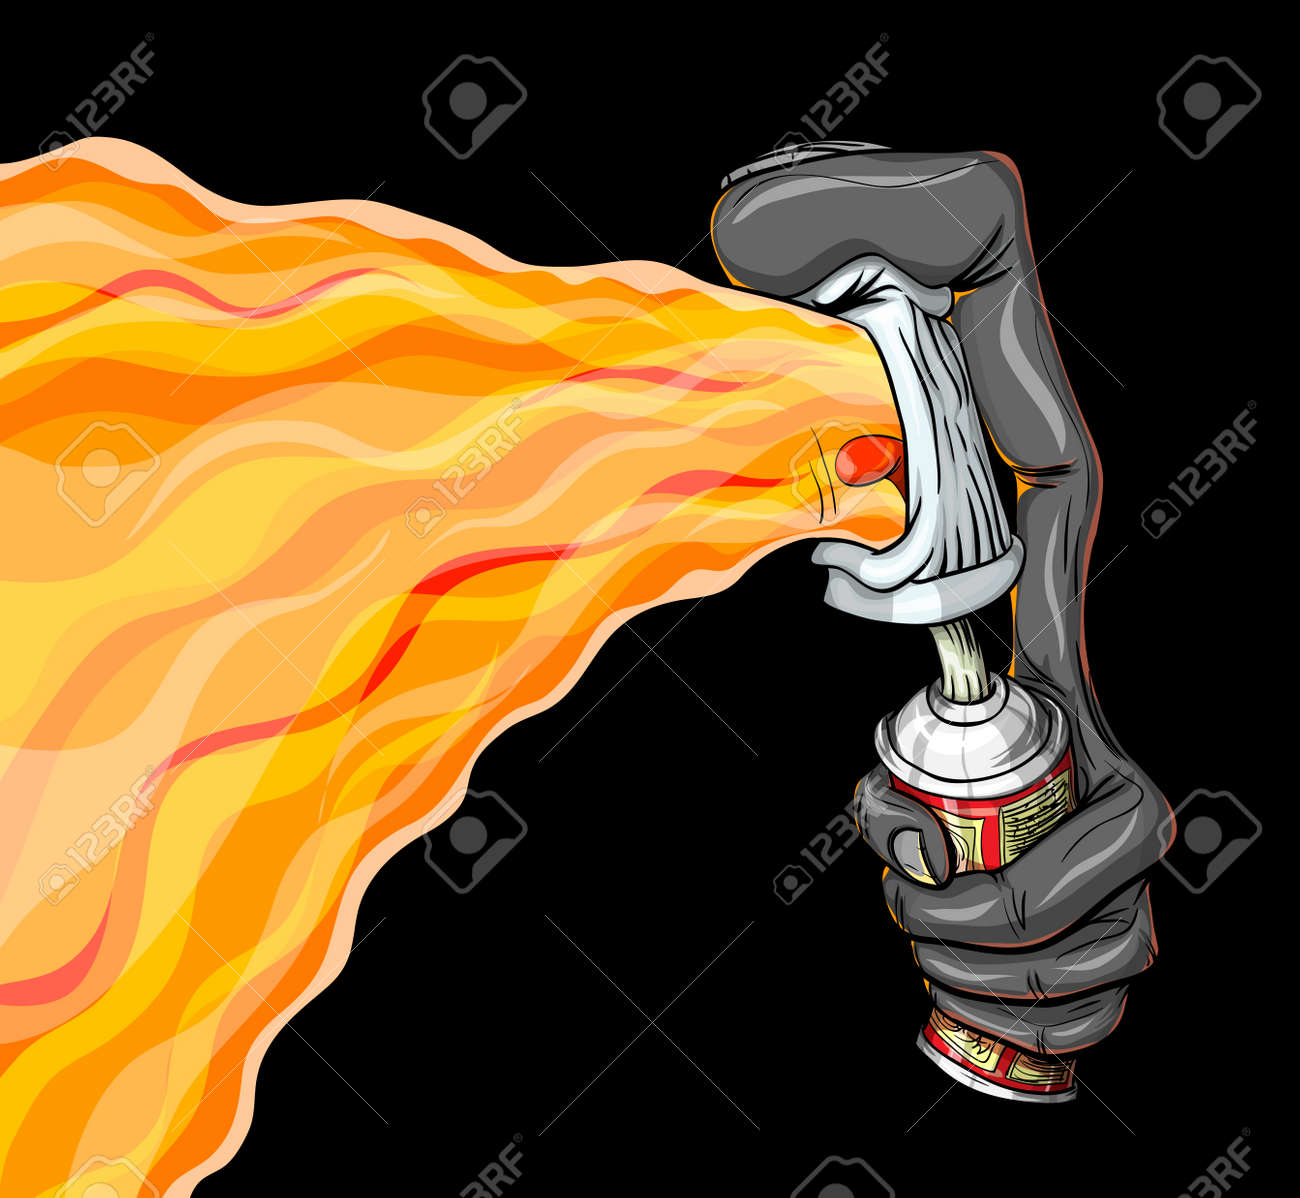 The container of paint spray fire graffiti. Stock Vector - 13503682